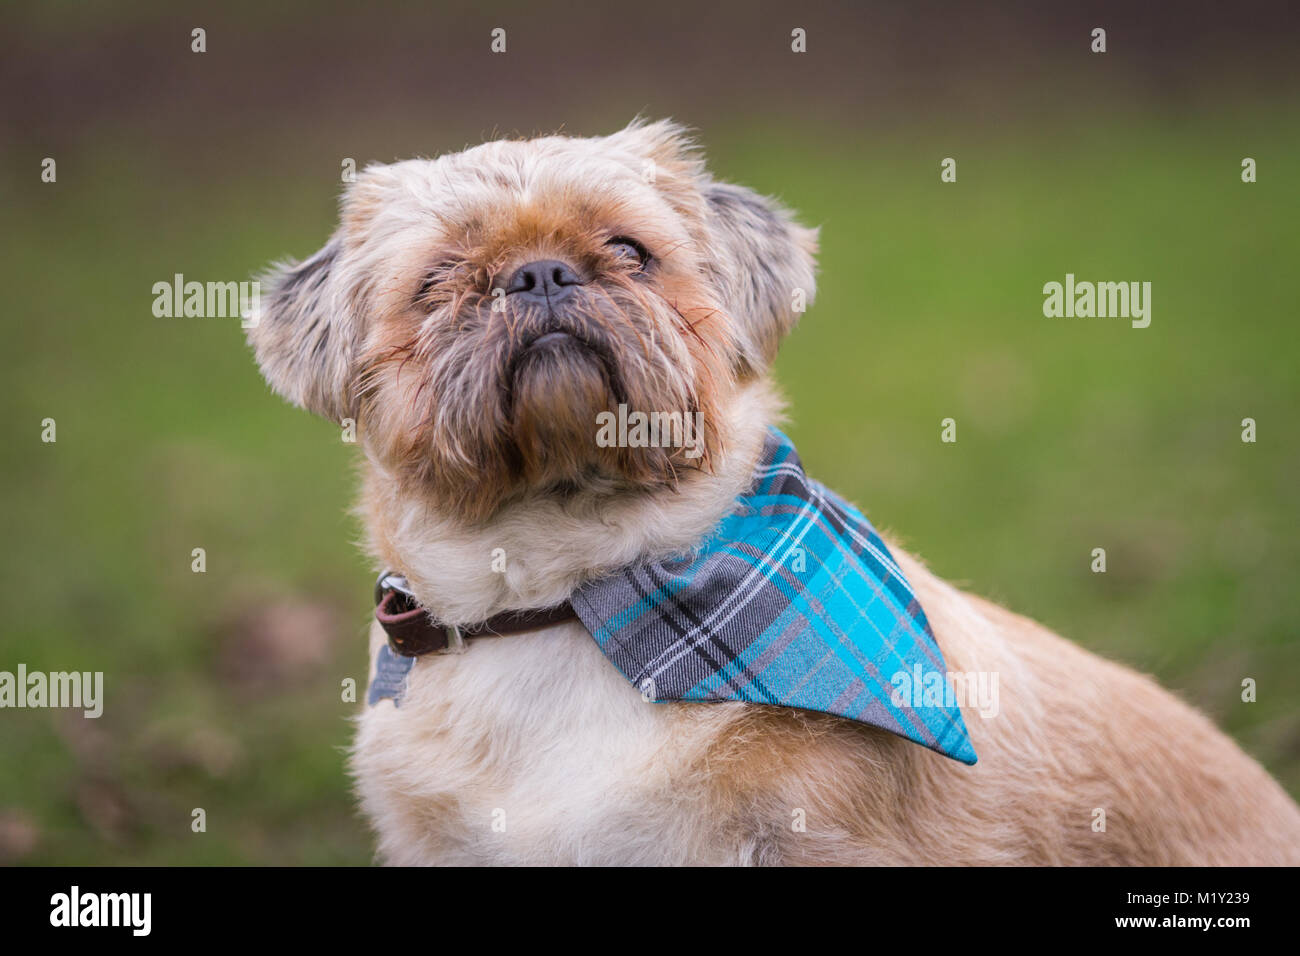 pug shih-tzu cross puppy outside in park - Stock Image